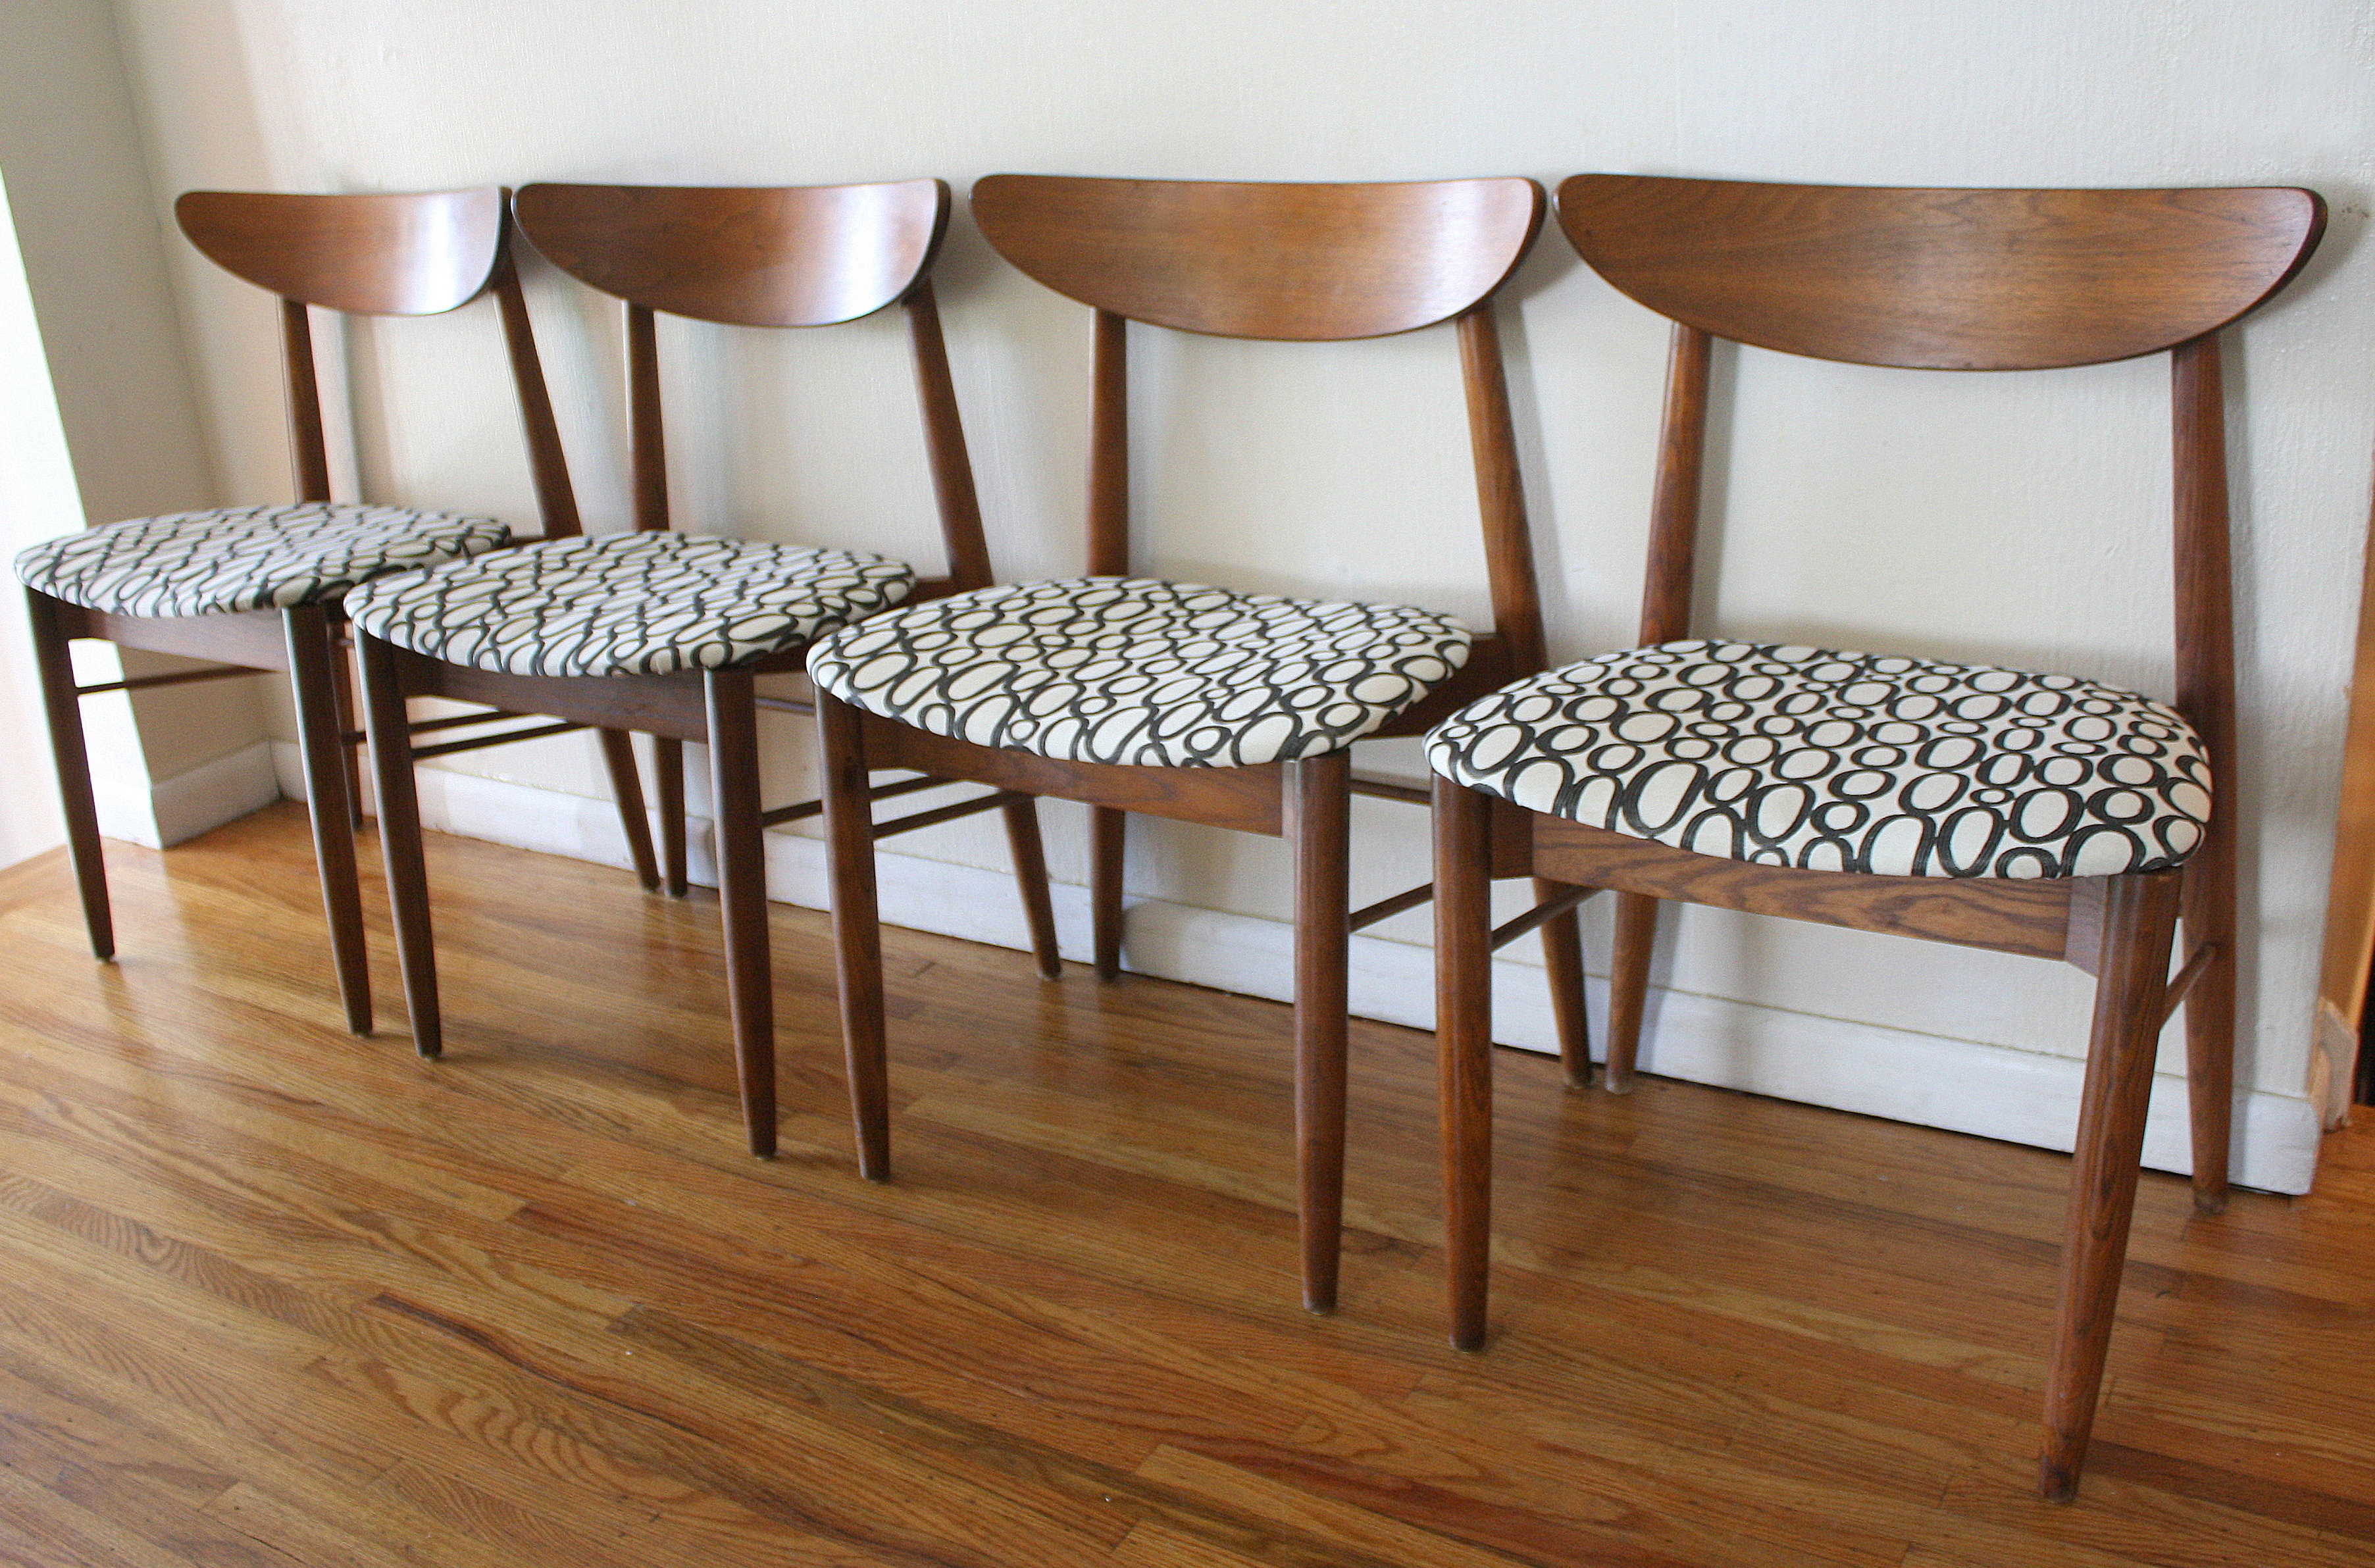 mid century modern sets of dining chairs mid century kitchen table mcm curved back chairs with circle seats 1